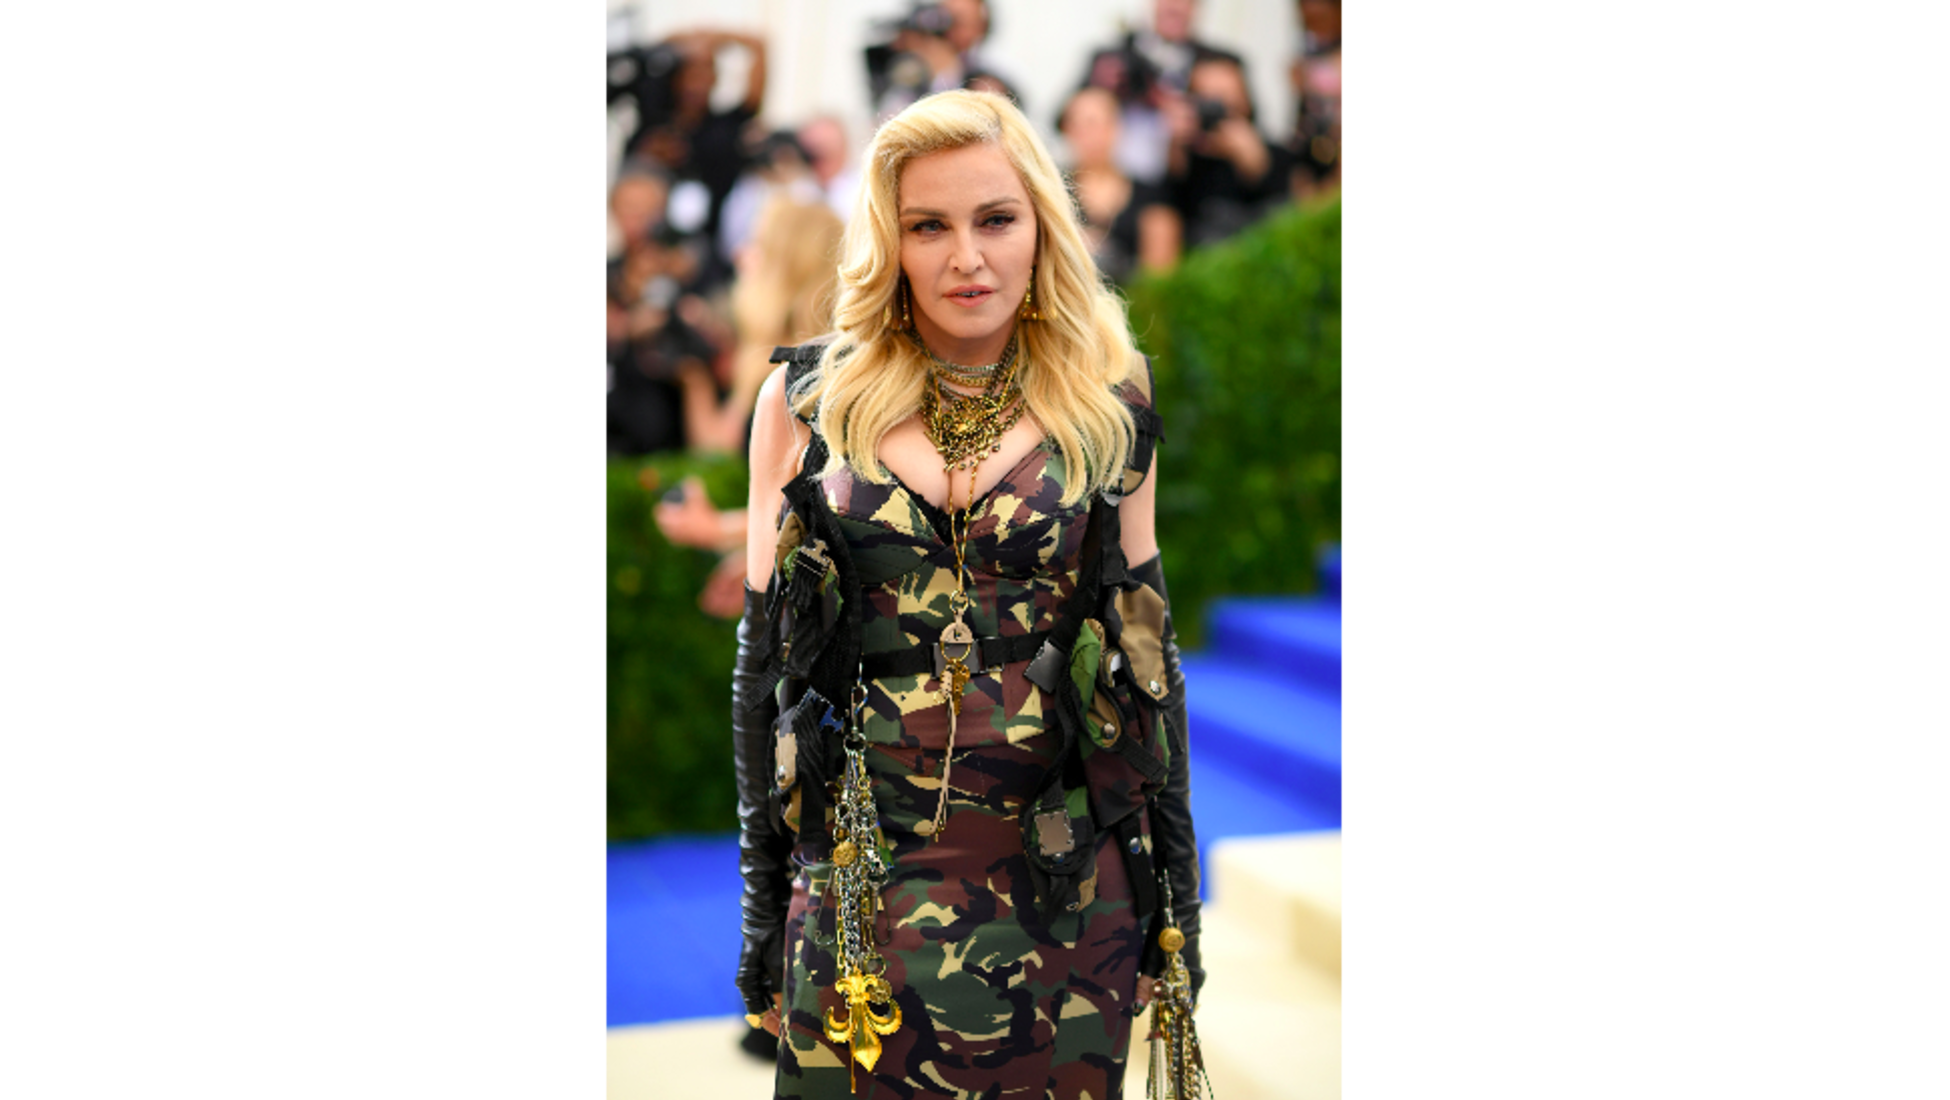 madona style of marketing Style #couplecam  madonna louise ciccone is an icon  by clicking submit, i consent to receiving bet newsletters and other marketing emails.